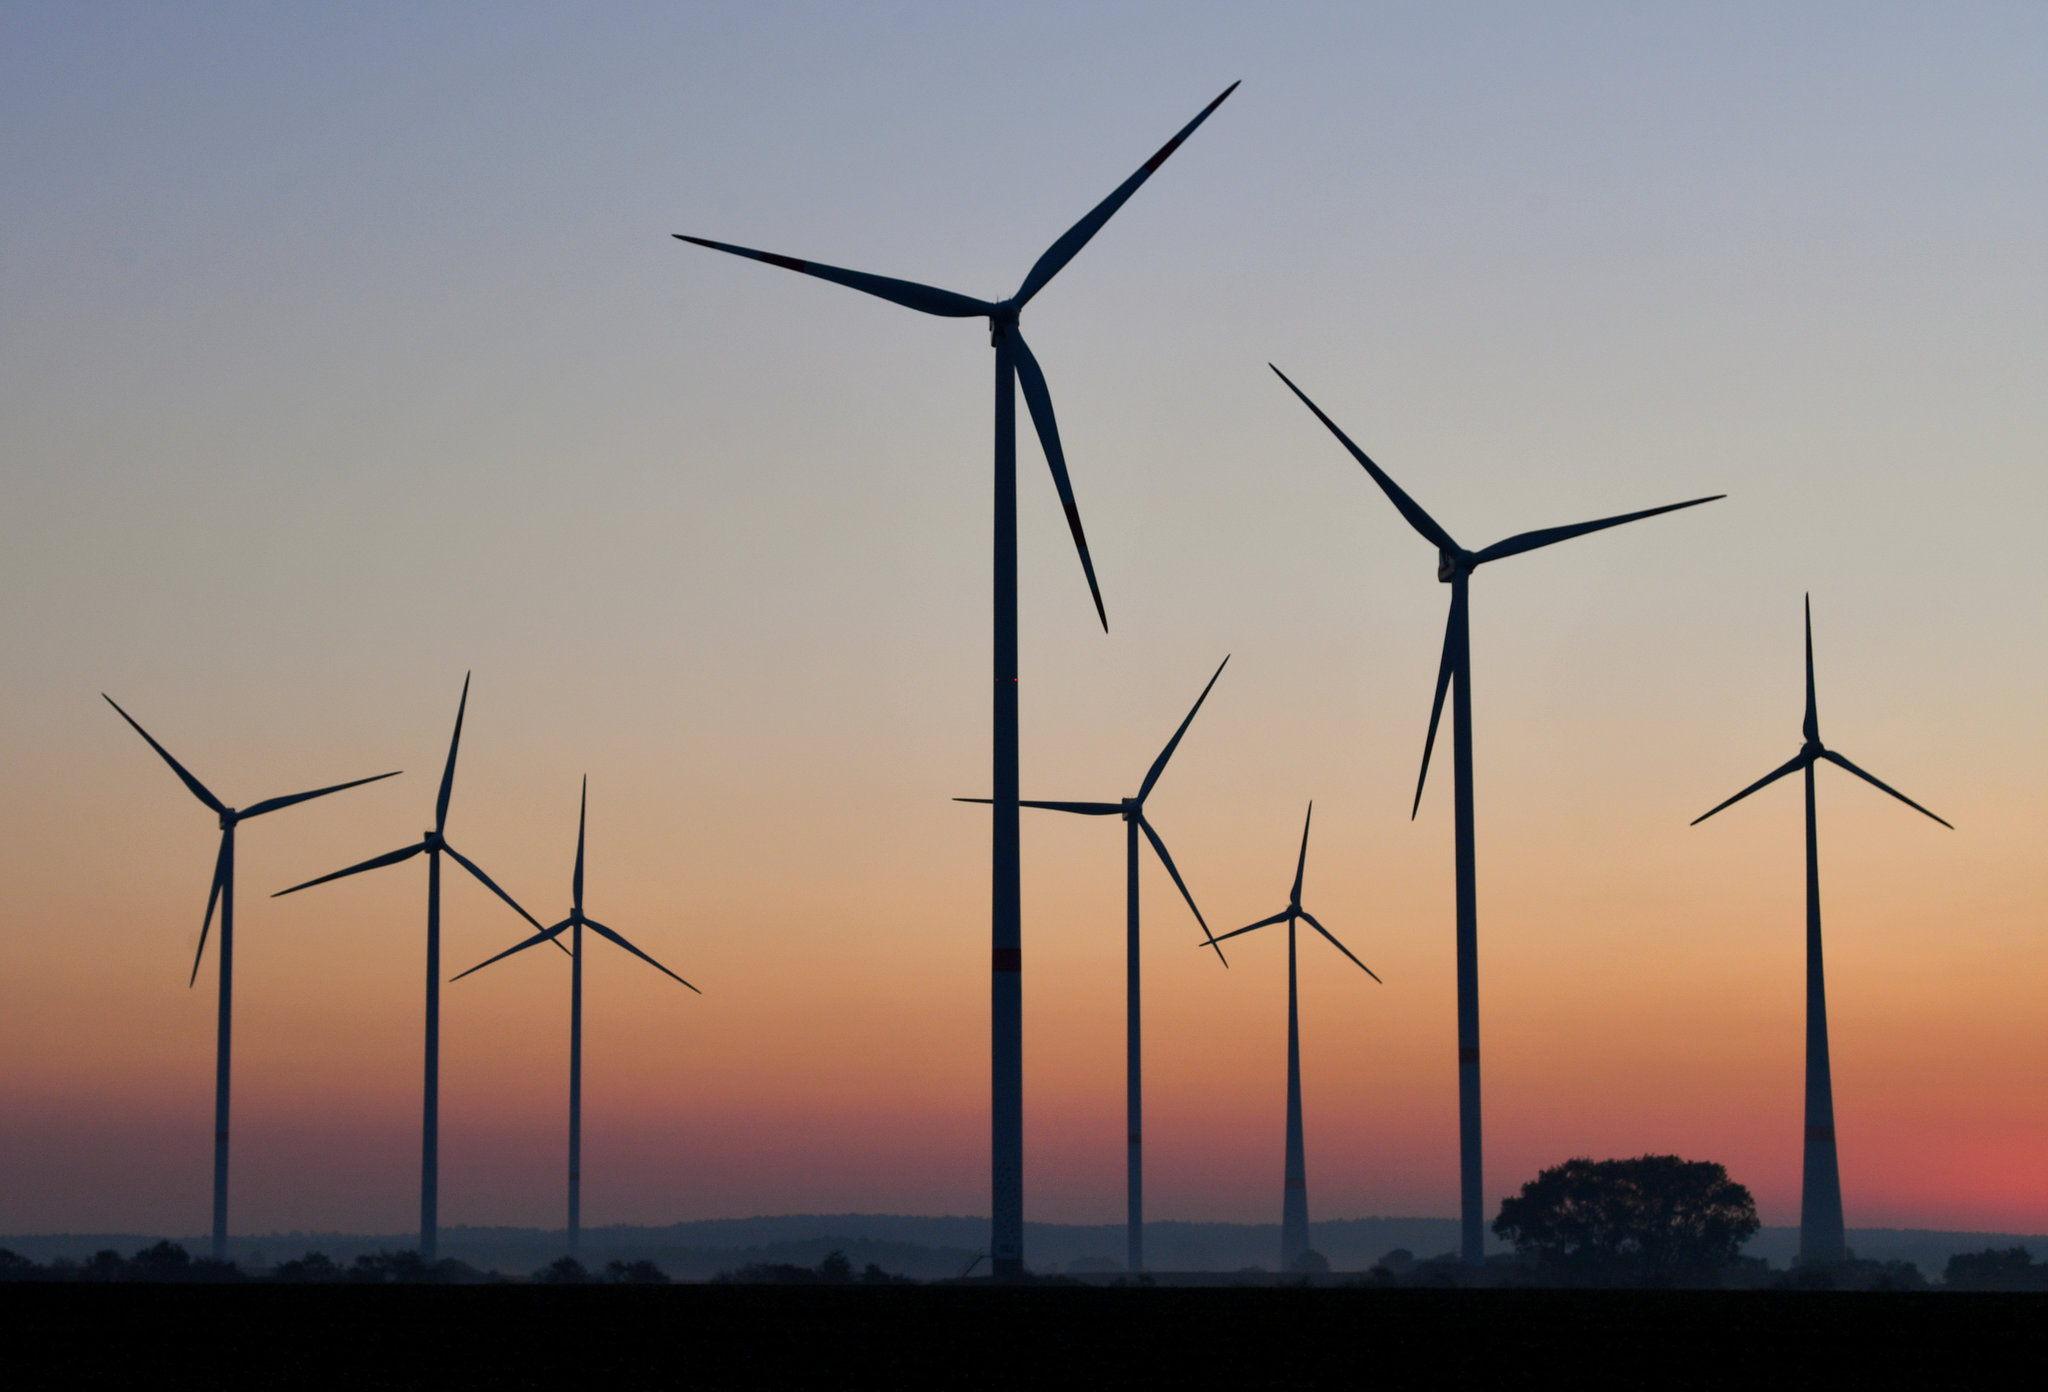 WIND POWER INDUSTRY CHALLENGED TO VALUE HUMAN INGENUITY ALONGSIDE ARTIFICIAL INTELLIGENCE